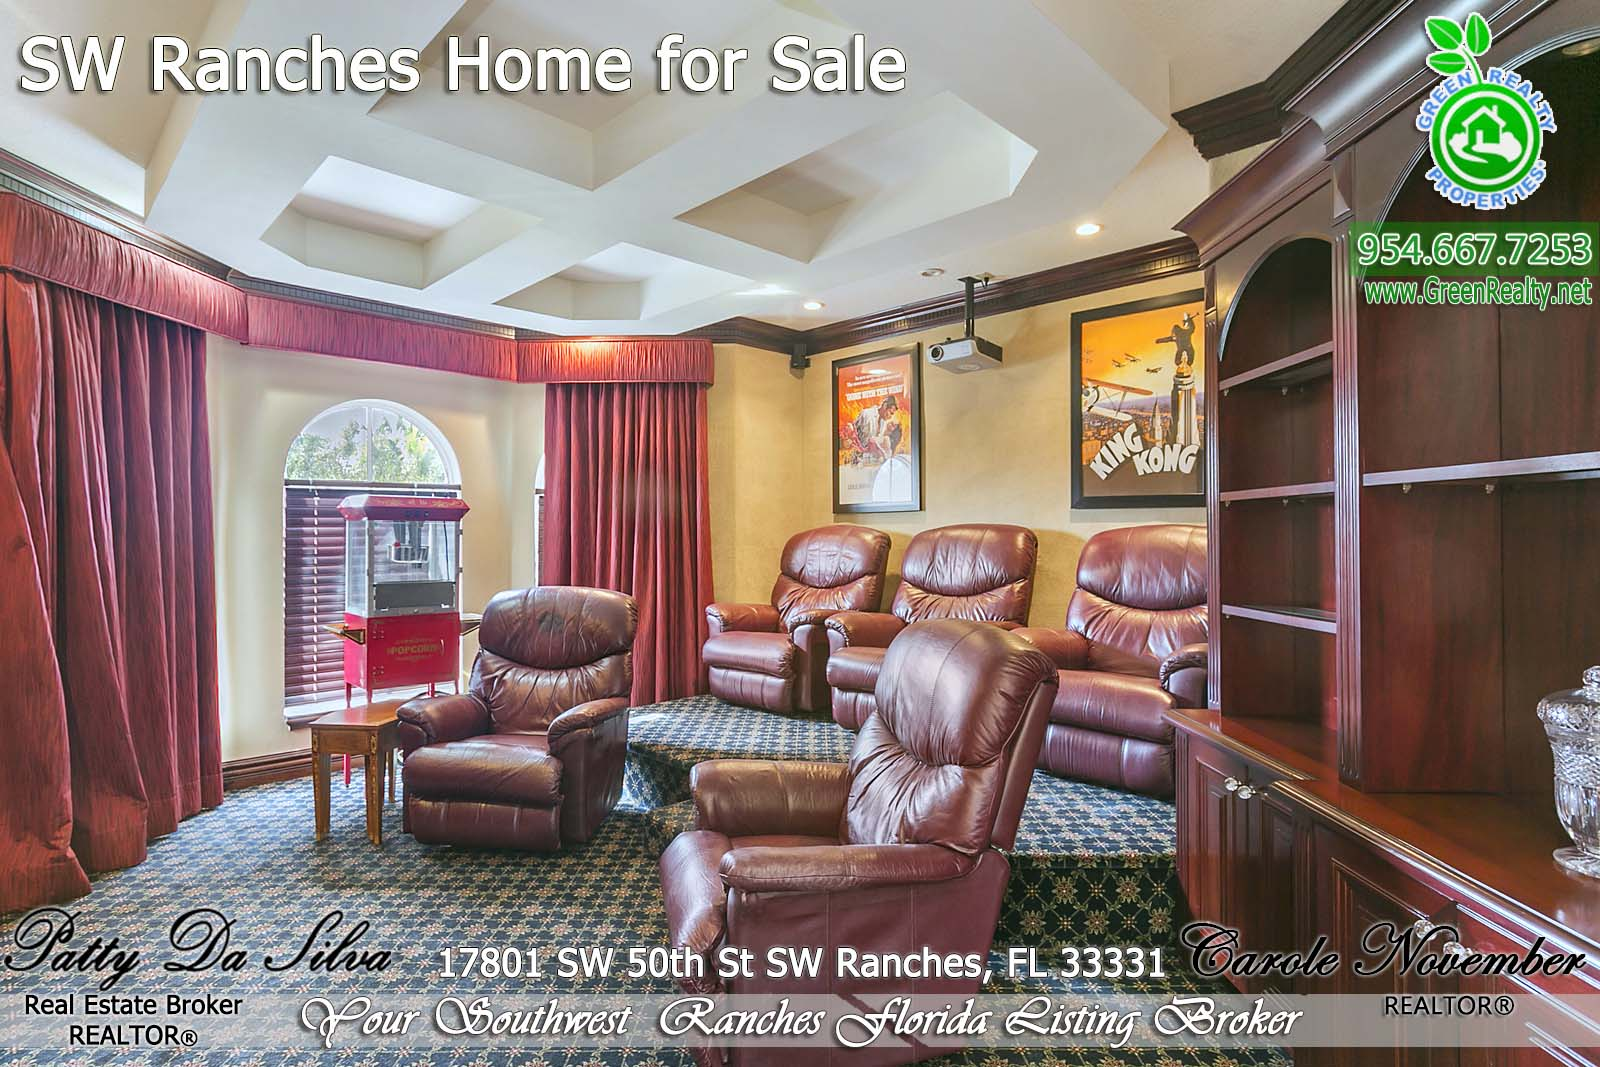 19 Southwest Ranches REALTORS (3)